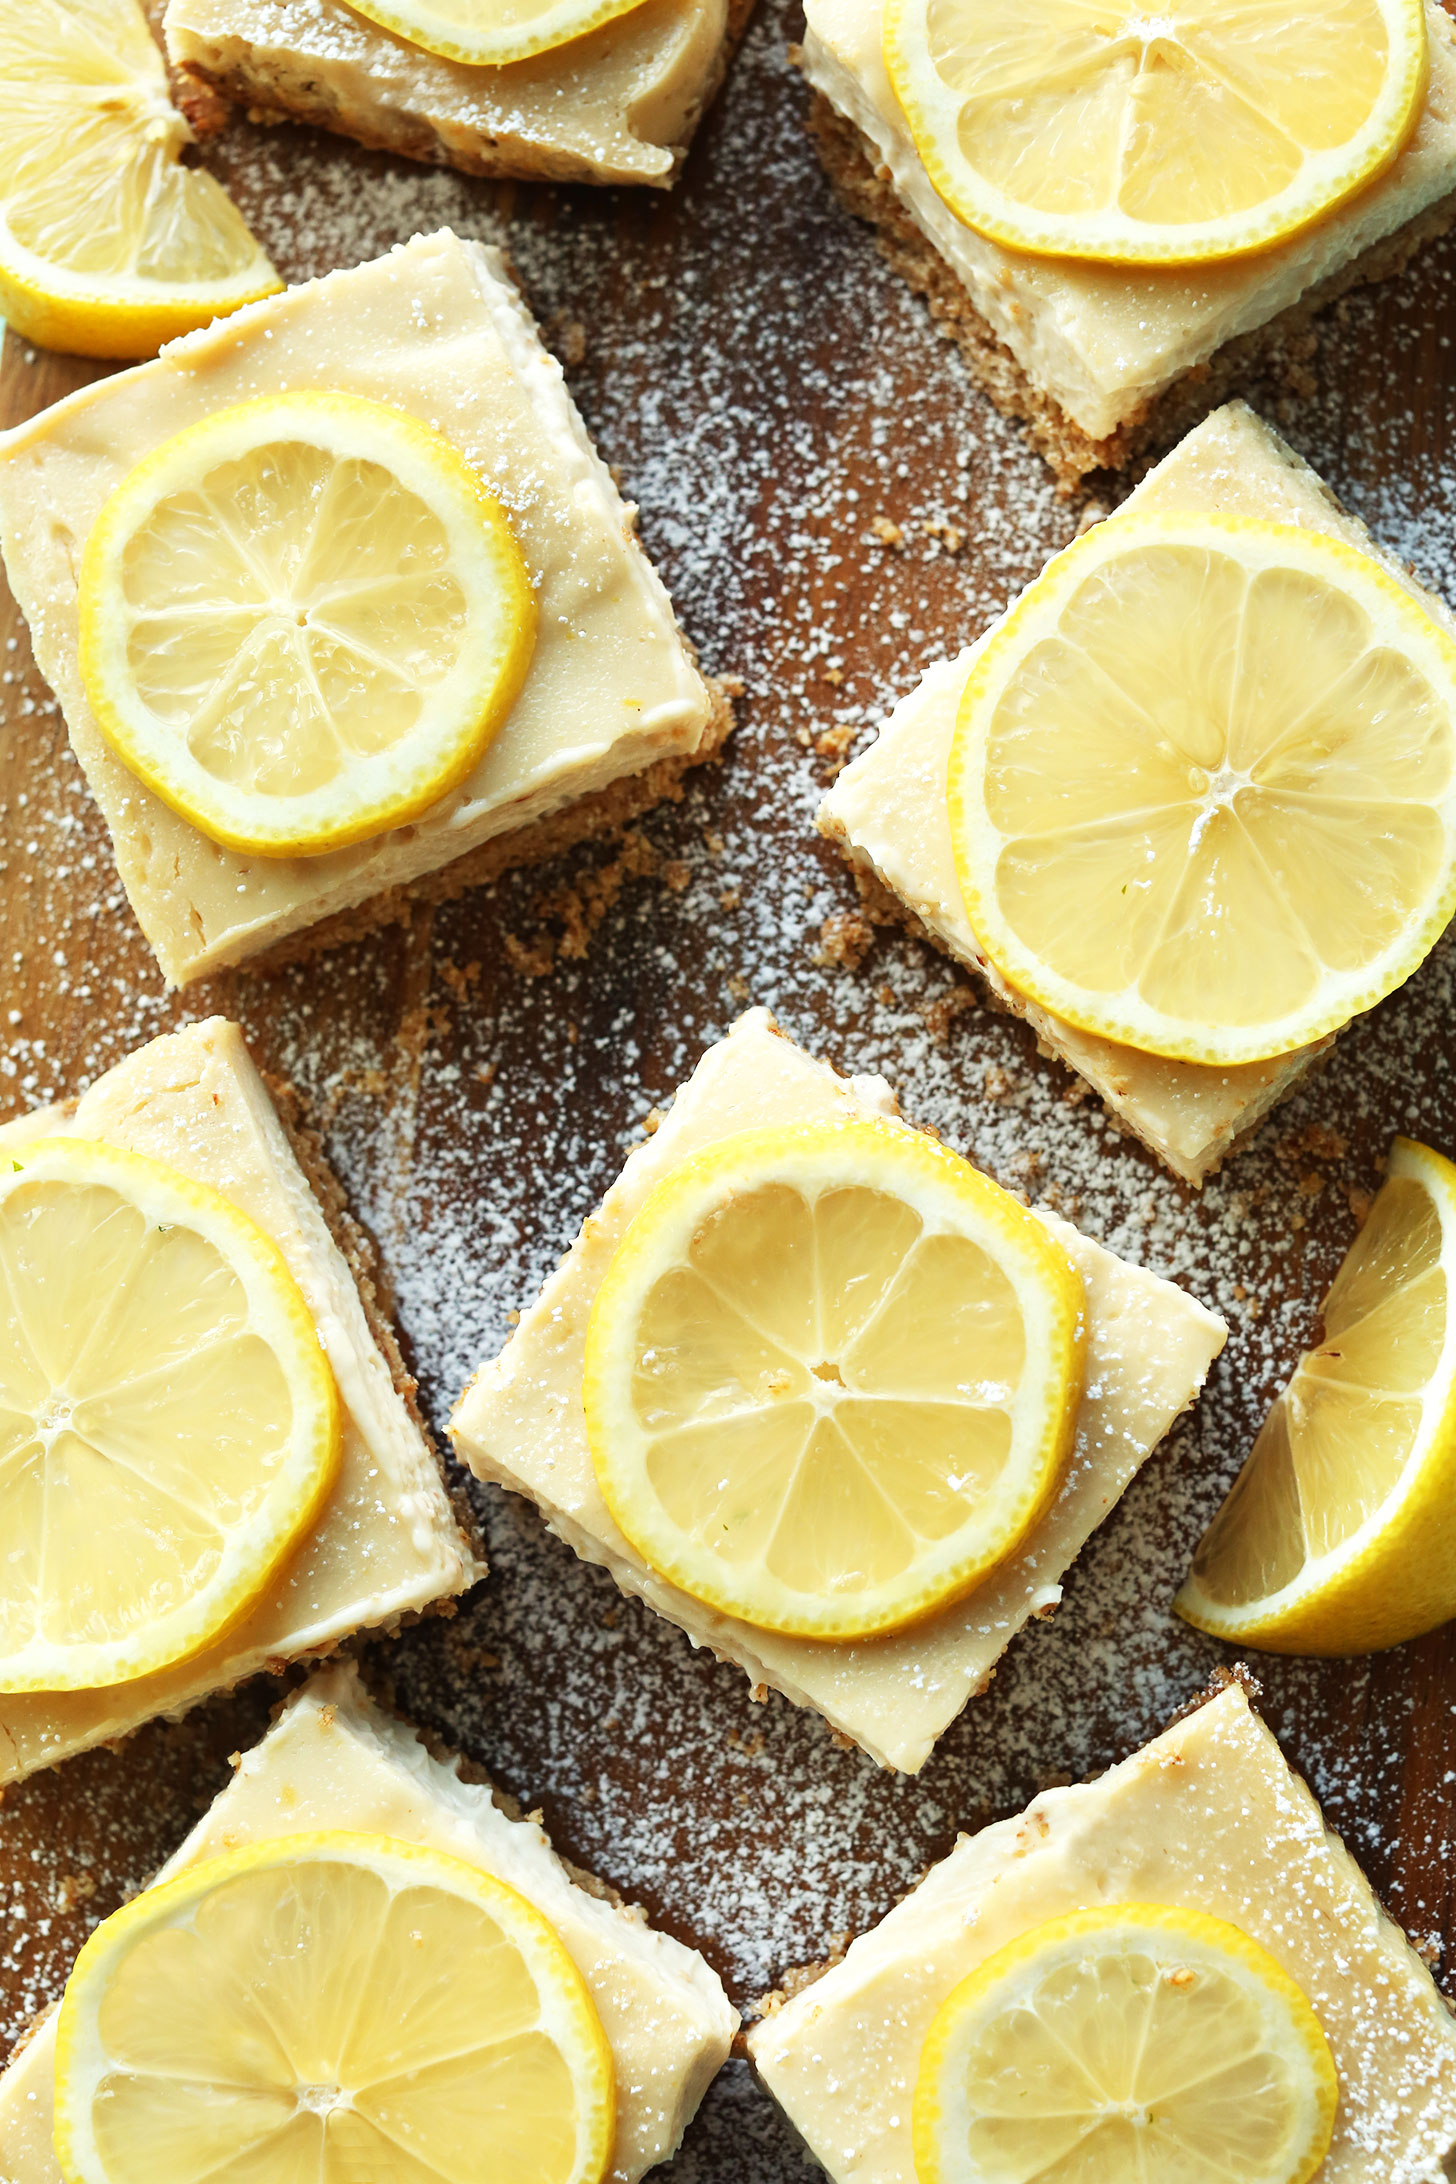 Squares of our incredible gluten-free vegan lemon bars recipe